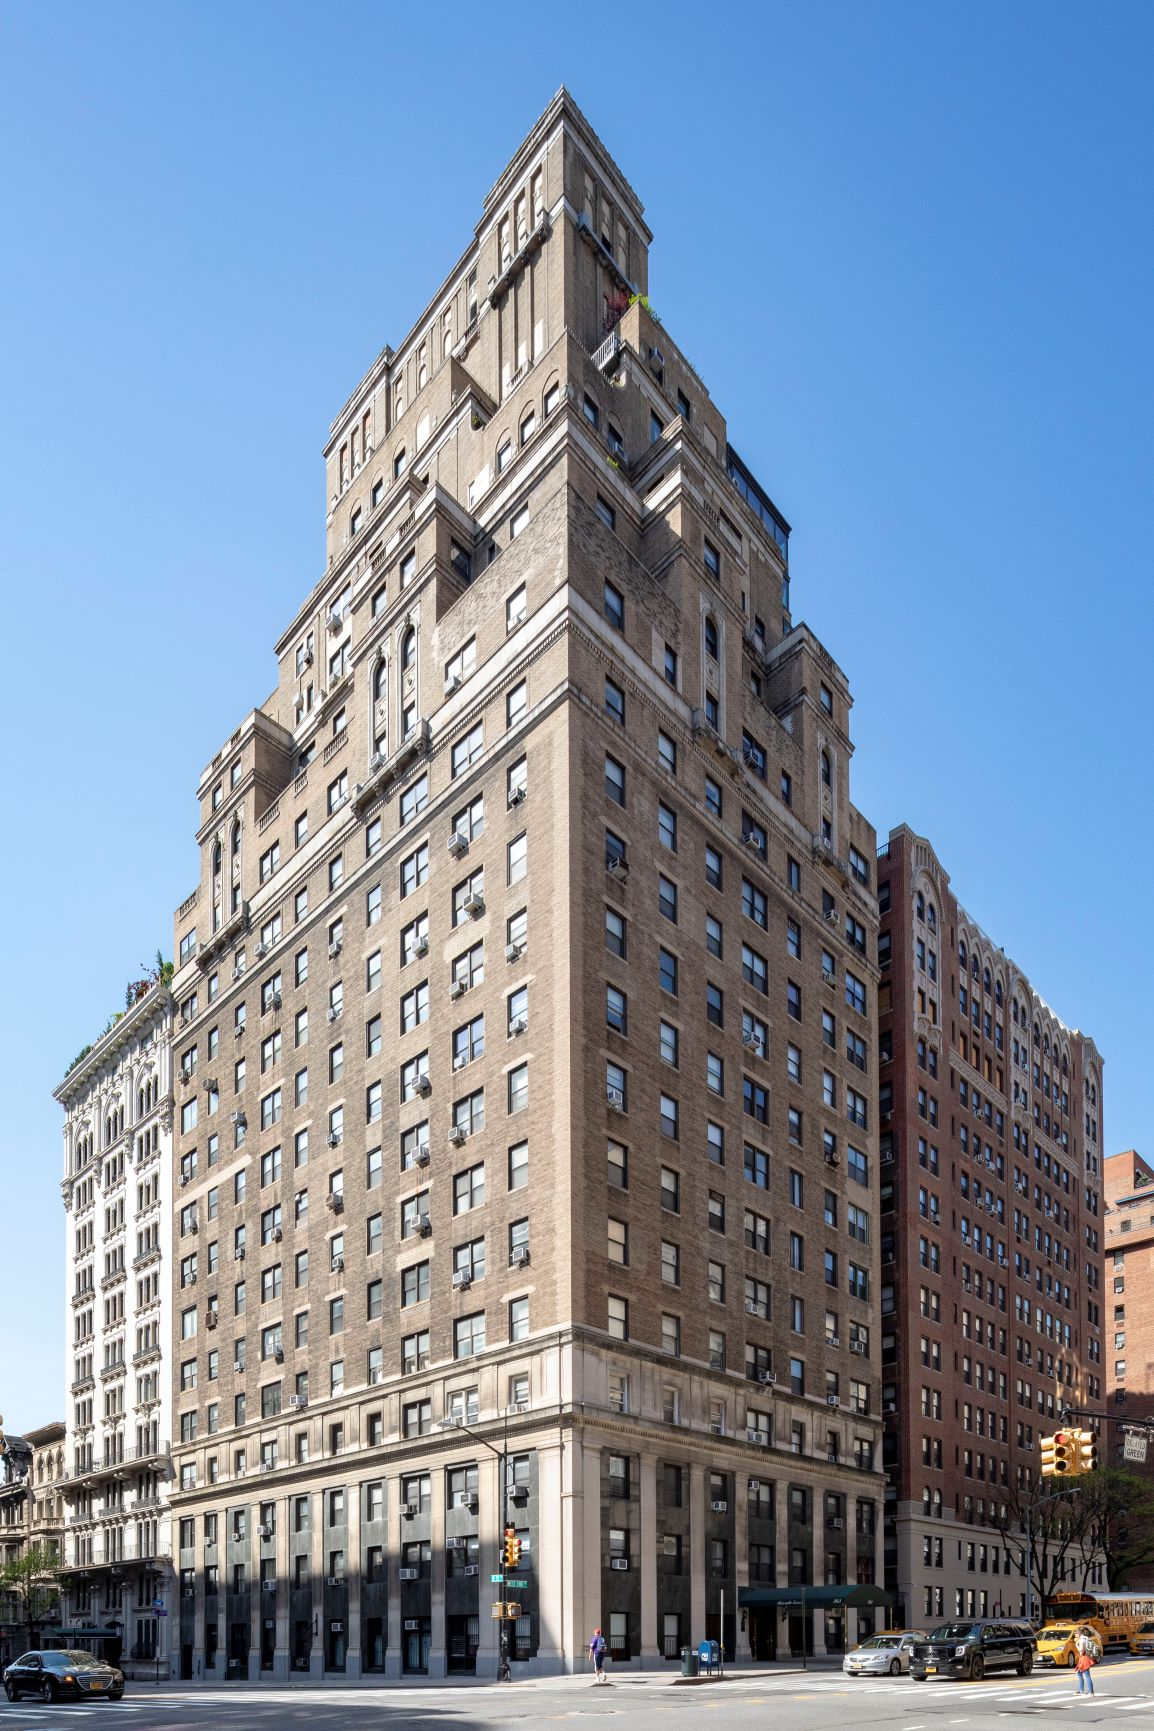 West End Avenue 263, New York, New York, New York, United States 10023, 1 Bedroom Bedrooms, ,1 BathroomBathrooms,Co-op,SOLD,Riverside Towers,263,8,1150